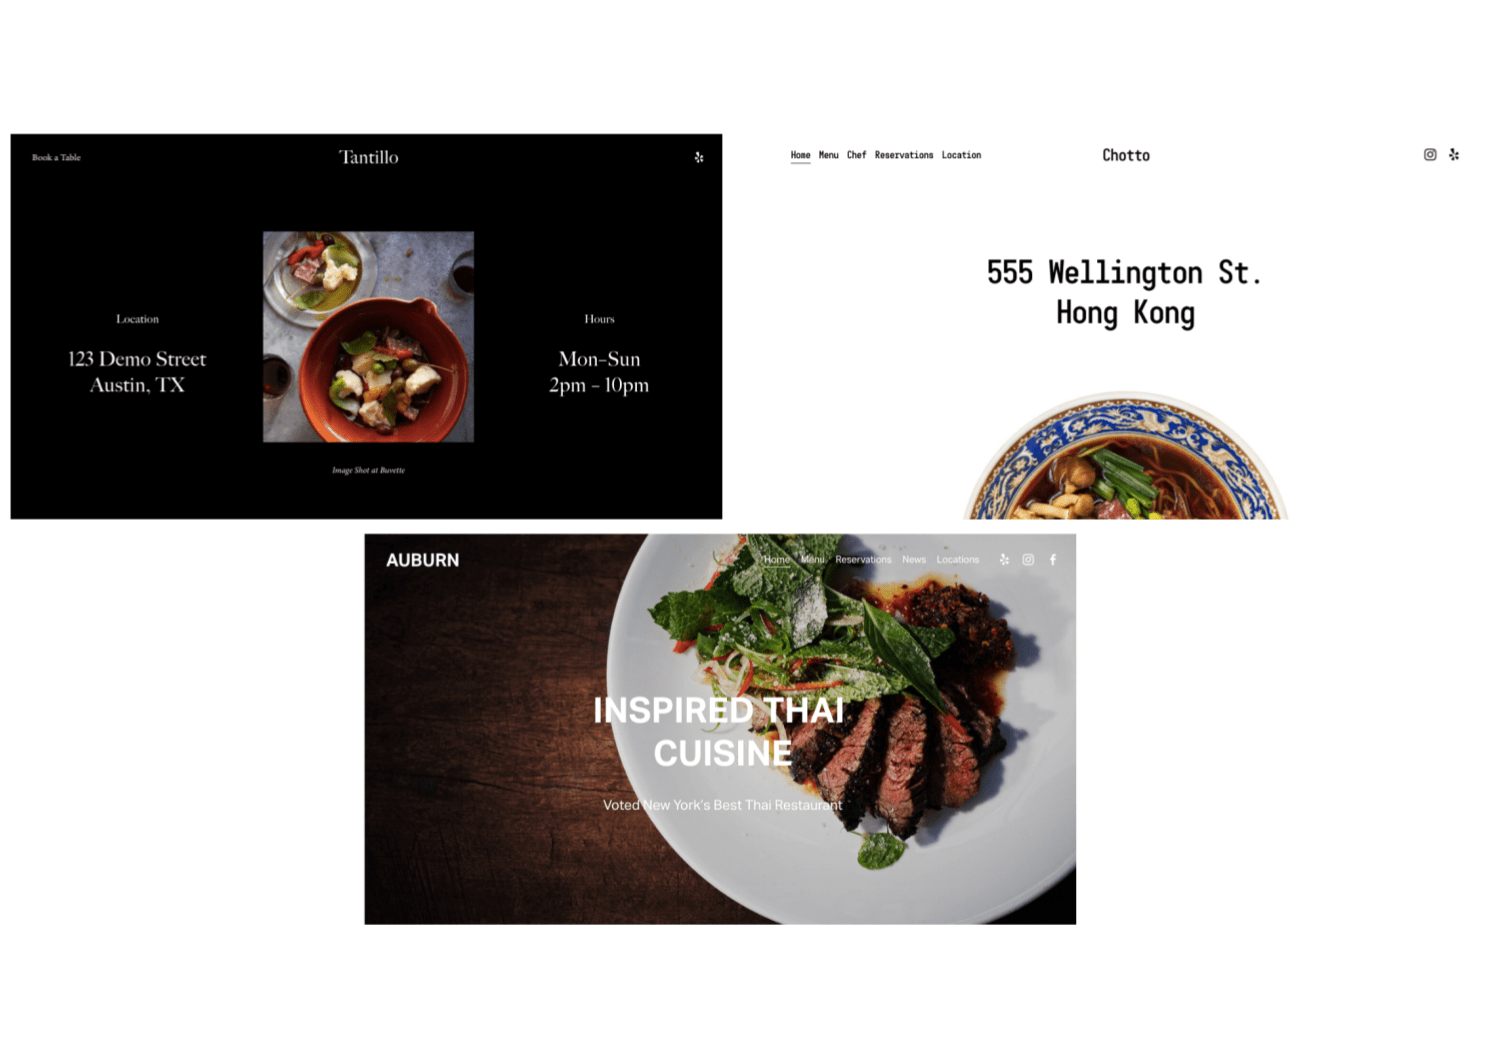 Squarespace Tantillo, Chotto, and Auburn template demo pages